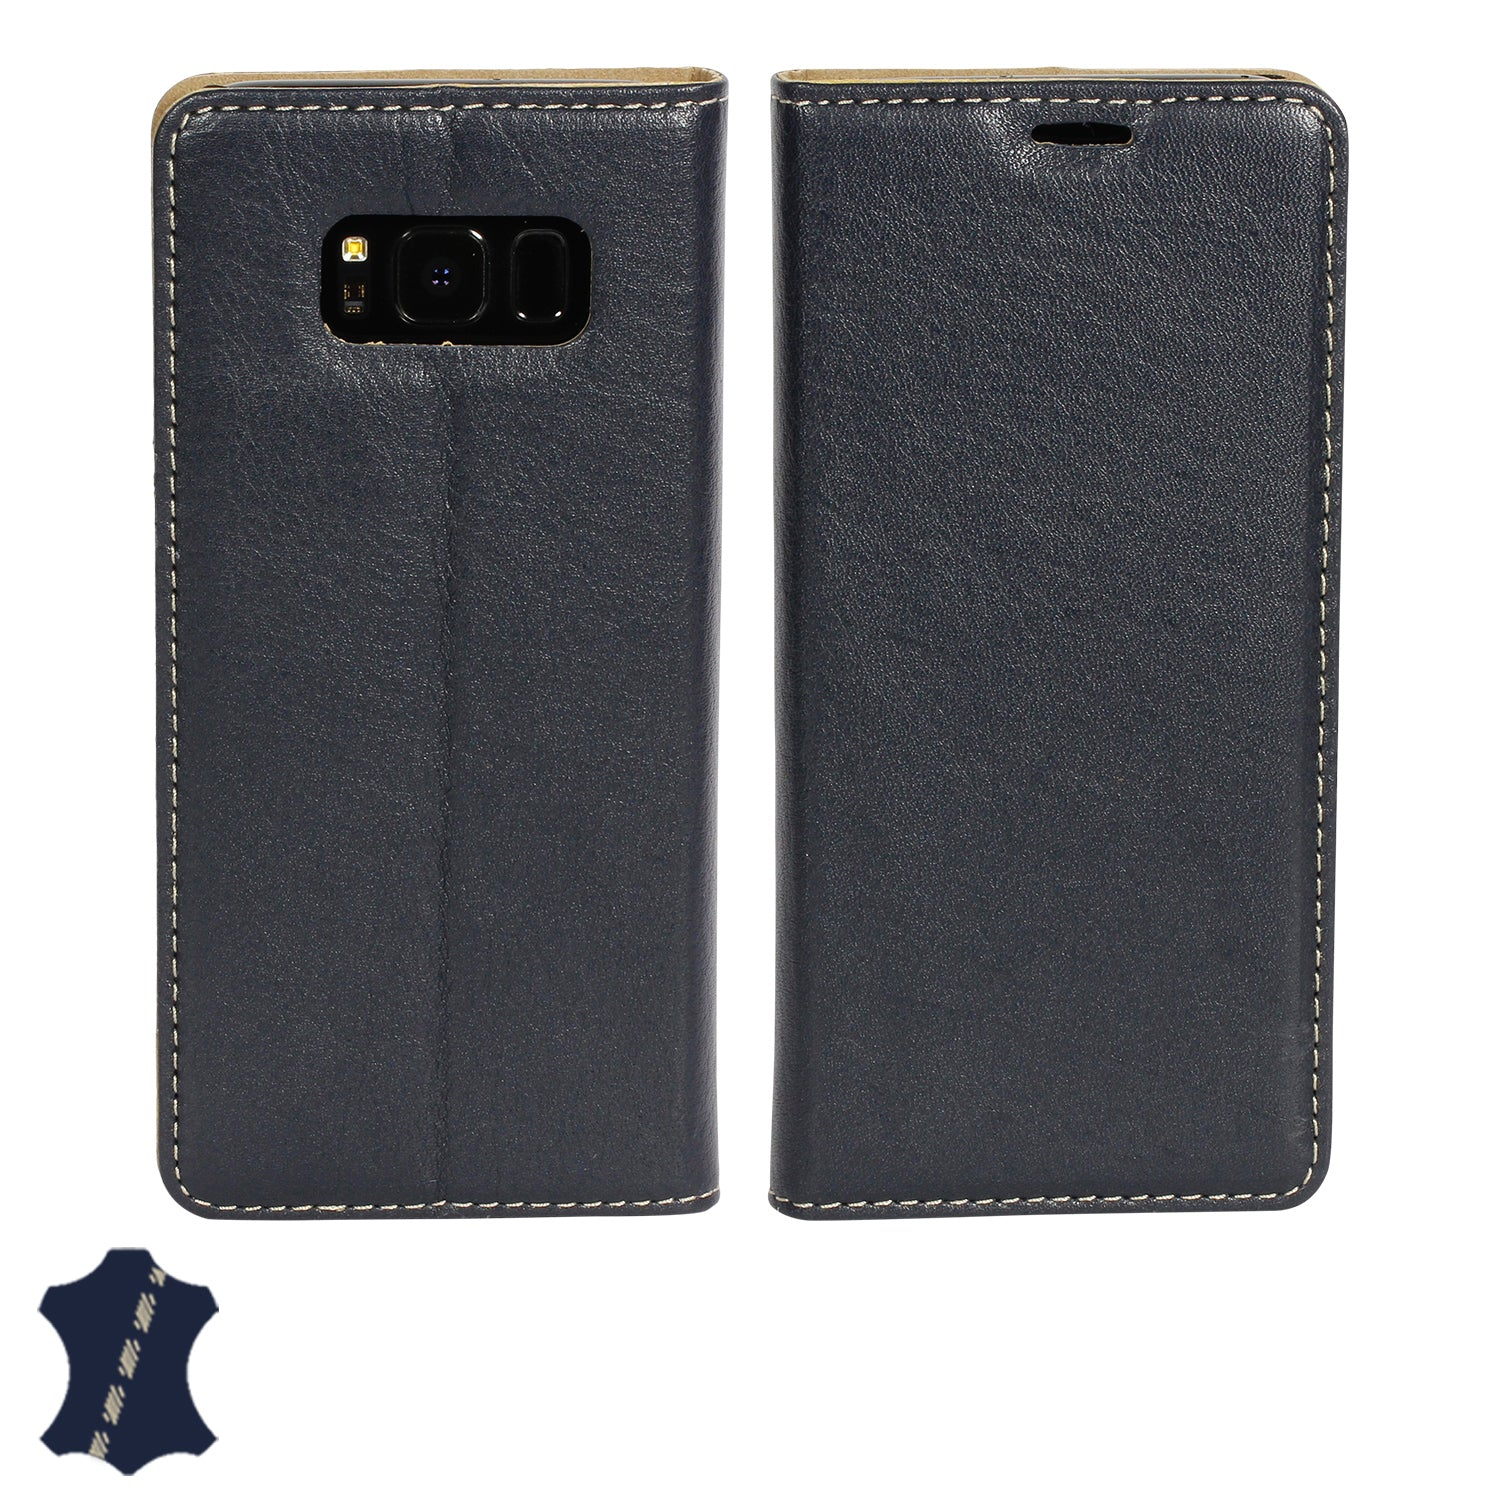 timeless design 806c2 87ac4 Samsung Galaxy S8+ (S8 Plus) Genuine European Leather Notebook Case with  Stand | Artisancover (3rd Gen.)